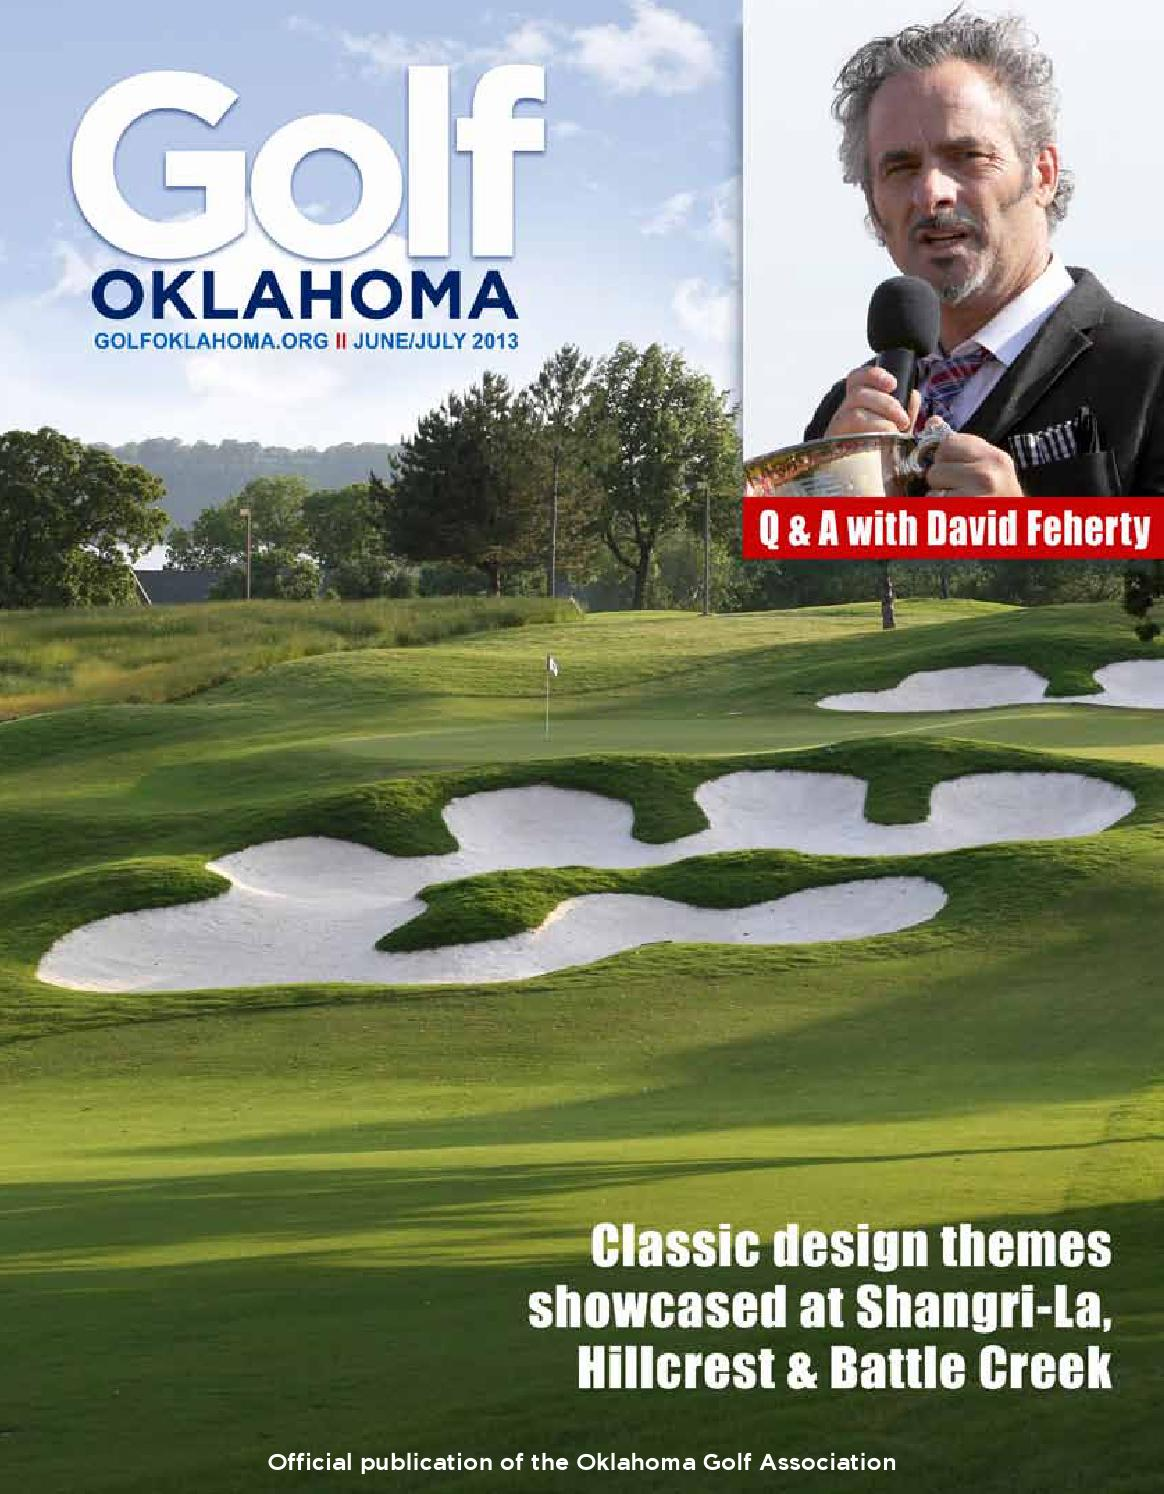 case study analysis callaway golf Callaway golf co case study solution, callaway golf co case study analysis, subjects covered consumer marketing marketing mix by rajiv lal, edith d prescott source: hbs premier case.